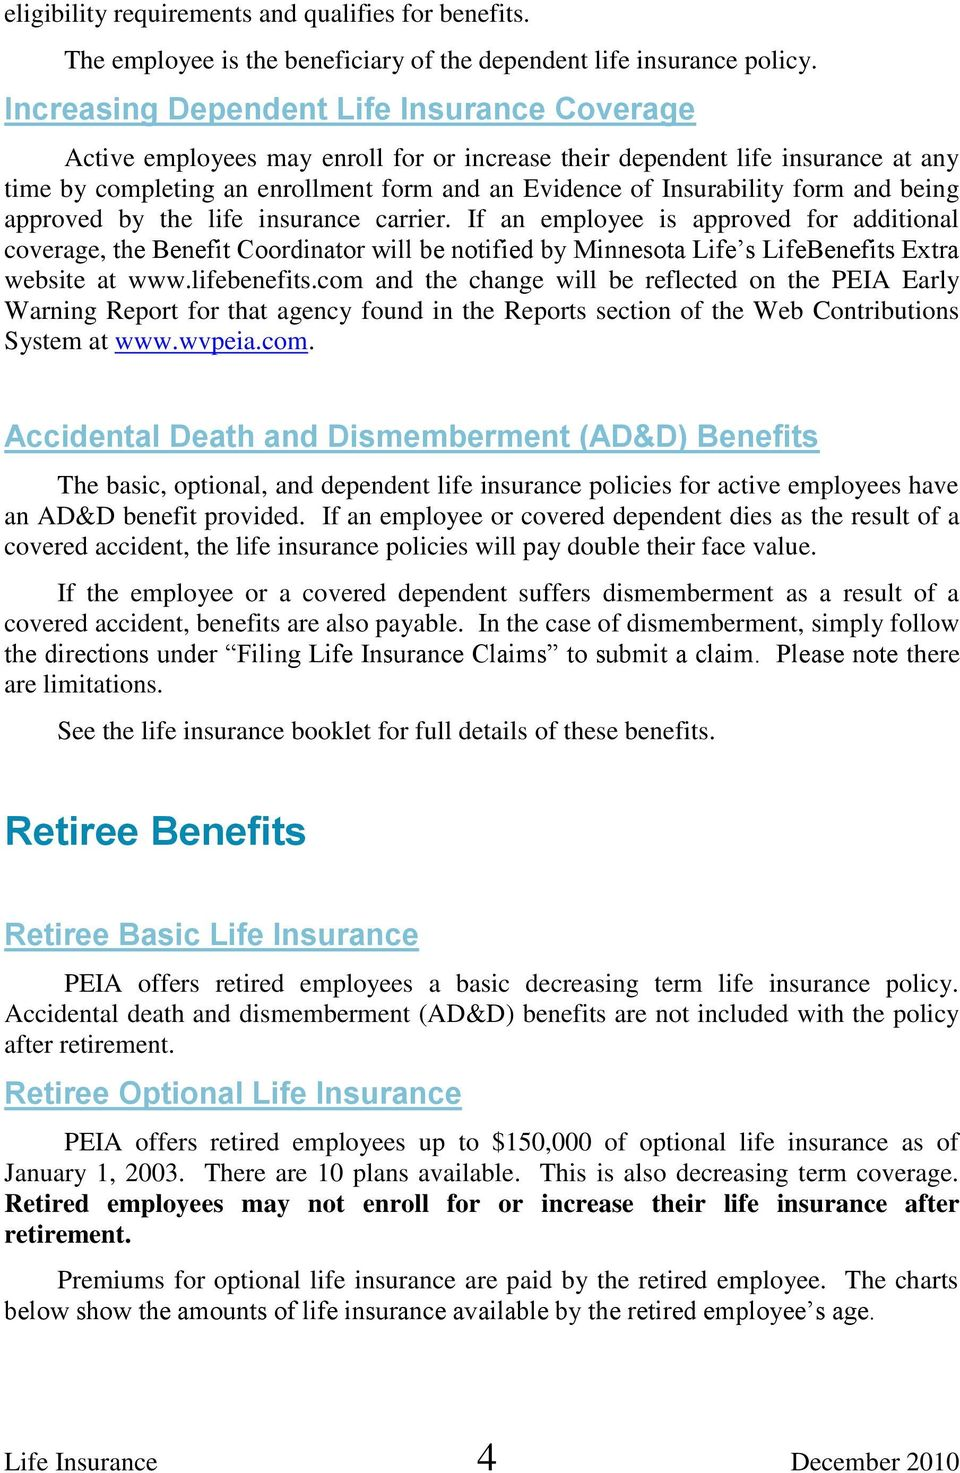 approved by the life insurance carrier. If an employee is approved for additional coverage, the Benefit Coordinator will be notified by Minnesota Life s LifeBenefits Extra website at www.lifebenefits.